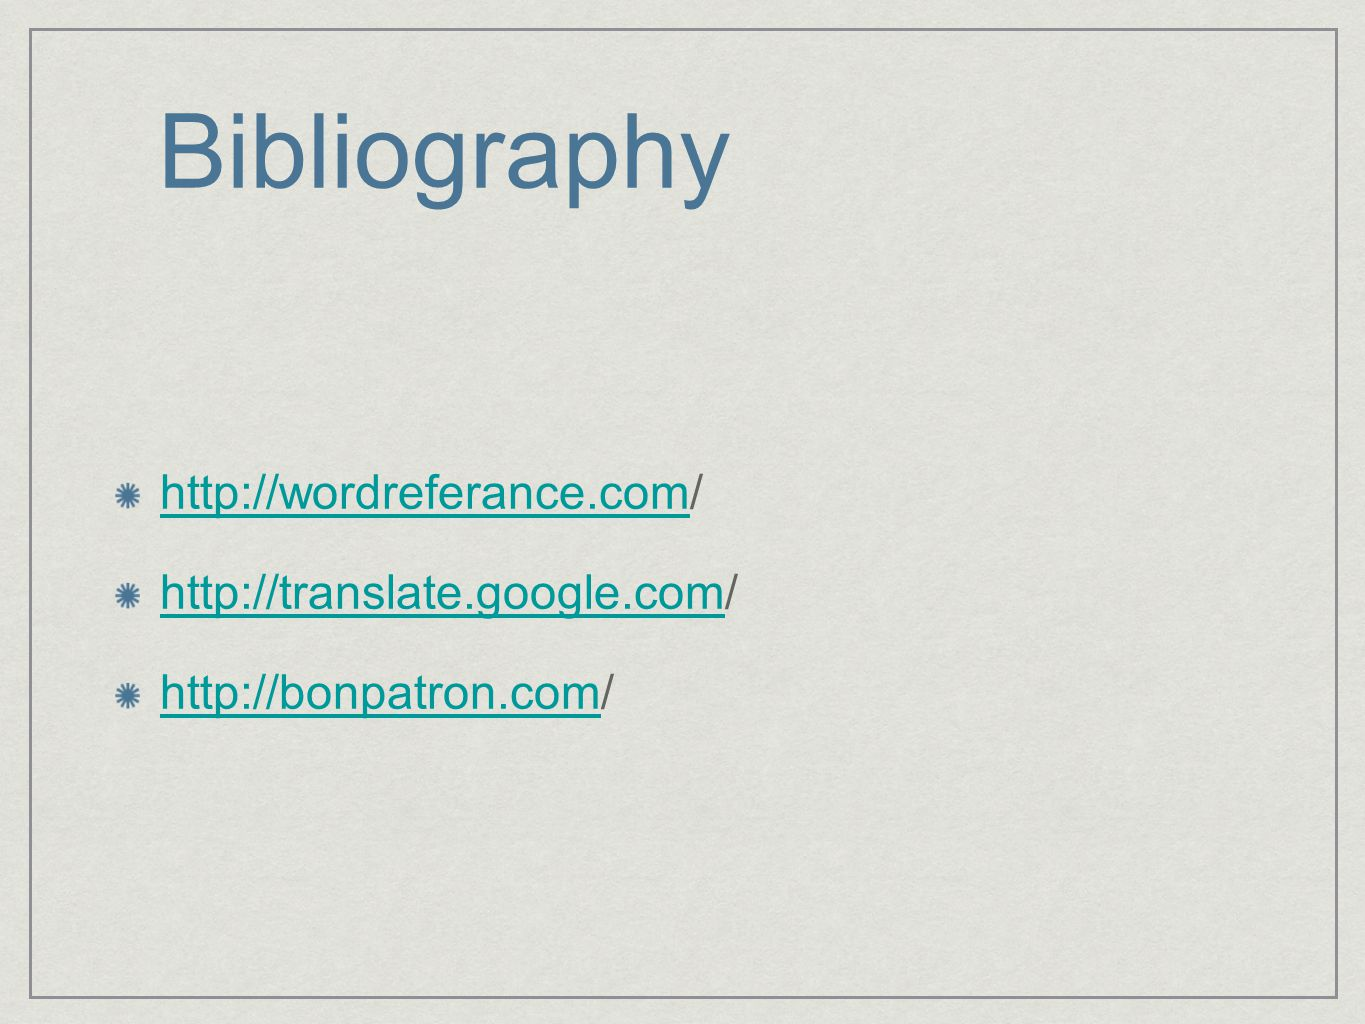 Bibliography http://wordreferance.comhttp://wordreferance.com/ http://translate.google.comhttp://translate.google.com/ http://bonpatron.comhttp://bonpatron.com/